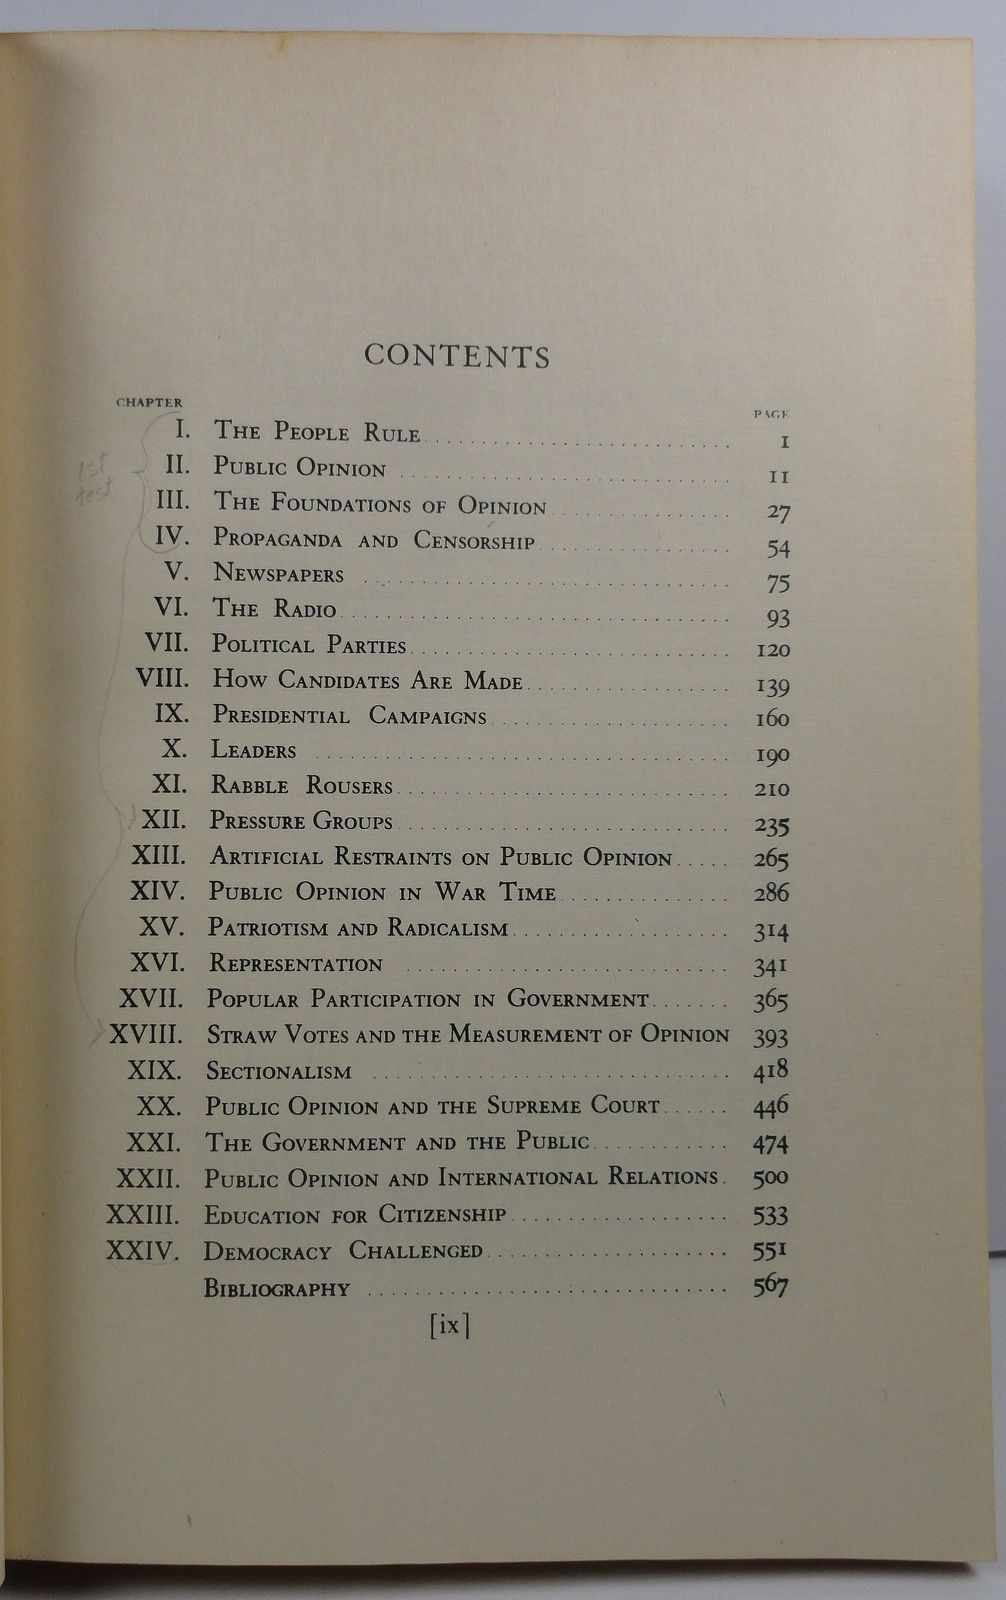 Public Opinion in a Democracy by Charles W. Smith 1947